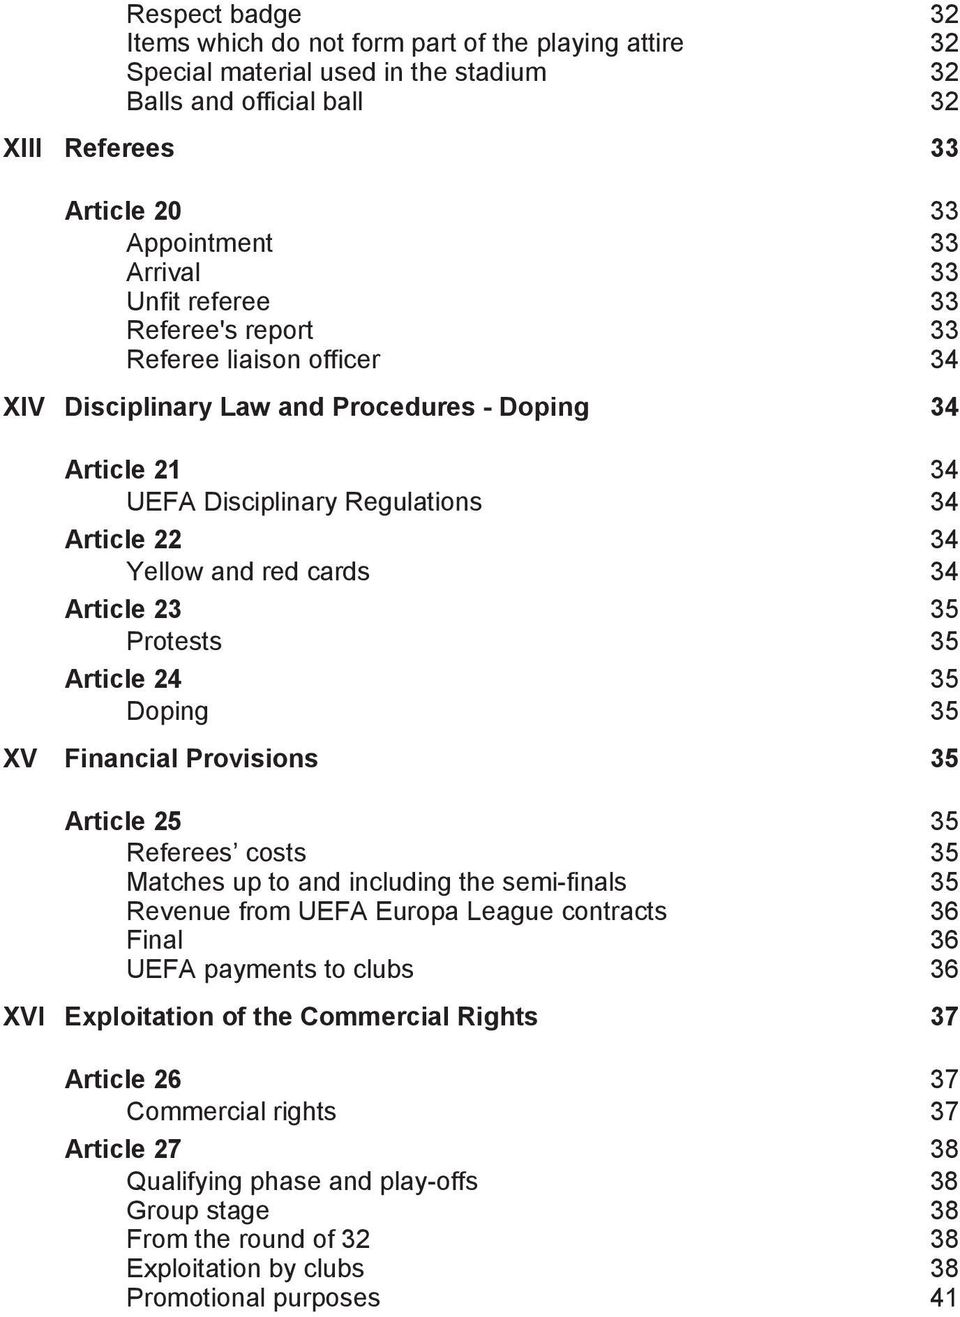 Article 23 35 Protests 35 Article 24 Doping 35 35 XV Financial Provisions 35 Article 25 35 Referees costs 35 Matches up to and including the semi-finals 35 Revenue from UEFA Europa League contracts